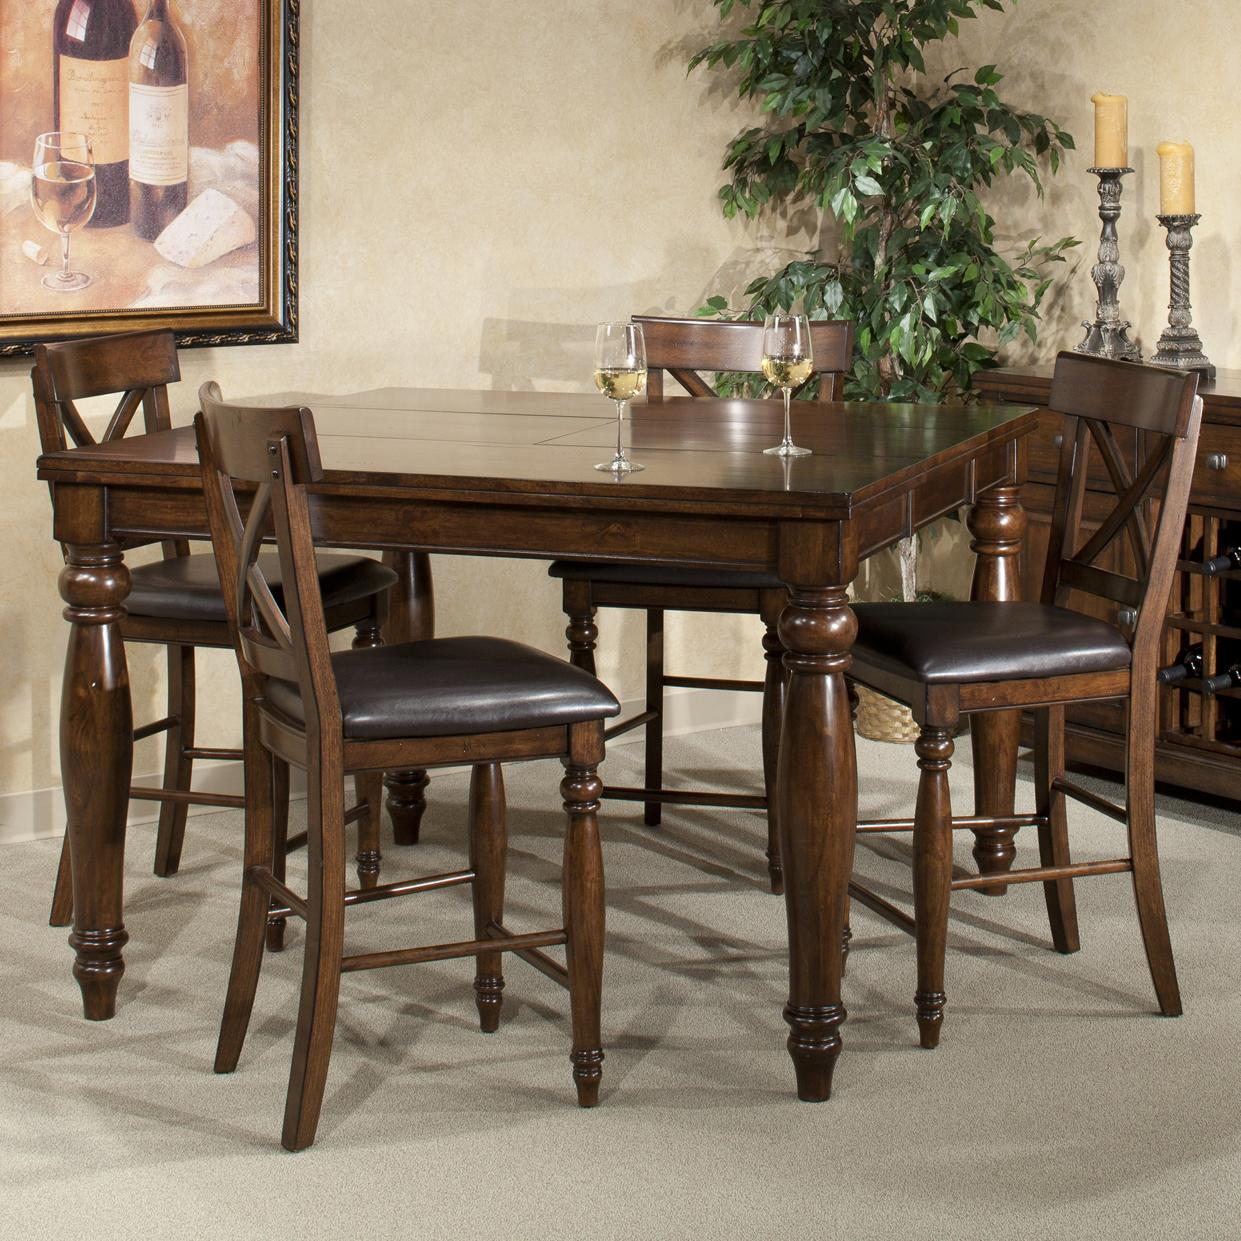 Intercon kingston five piece gathering table and stool set for Hudsons furniture